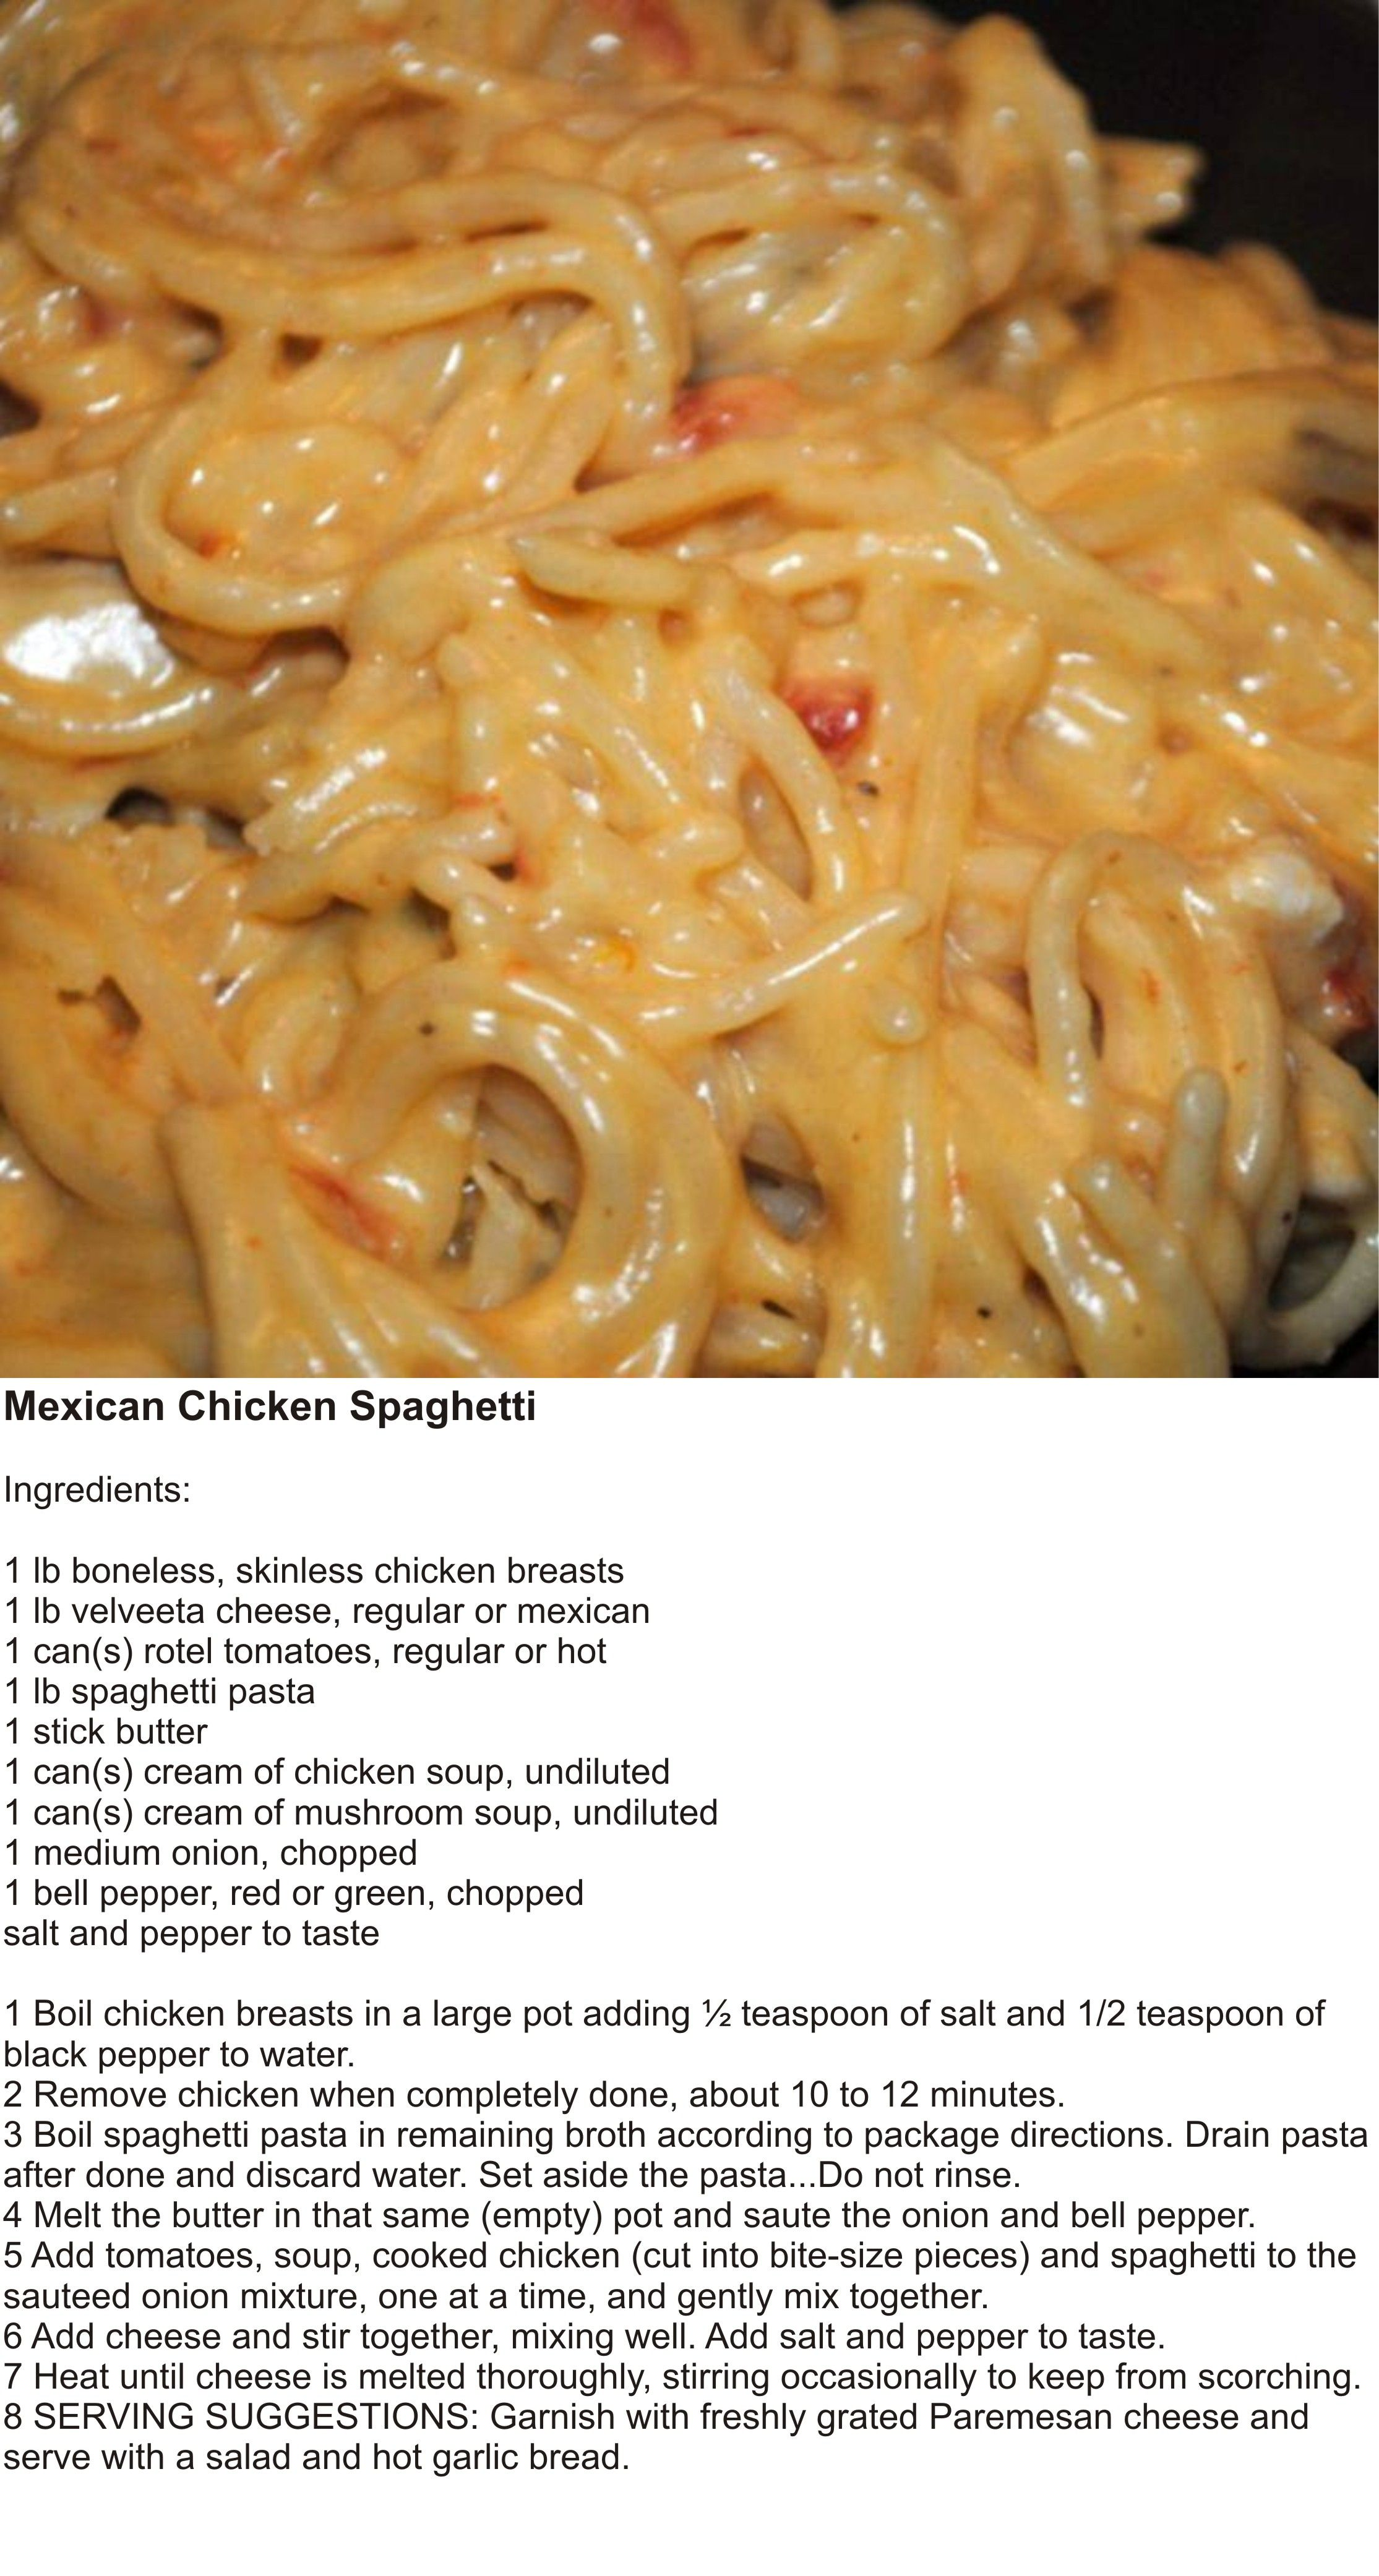 Mexican Chicken Spaghetti Recipes Food Recipies Food